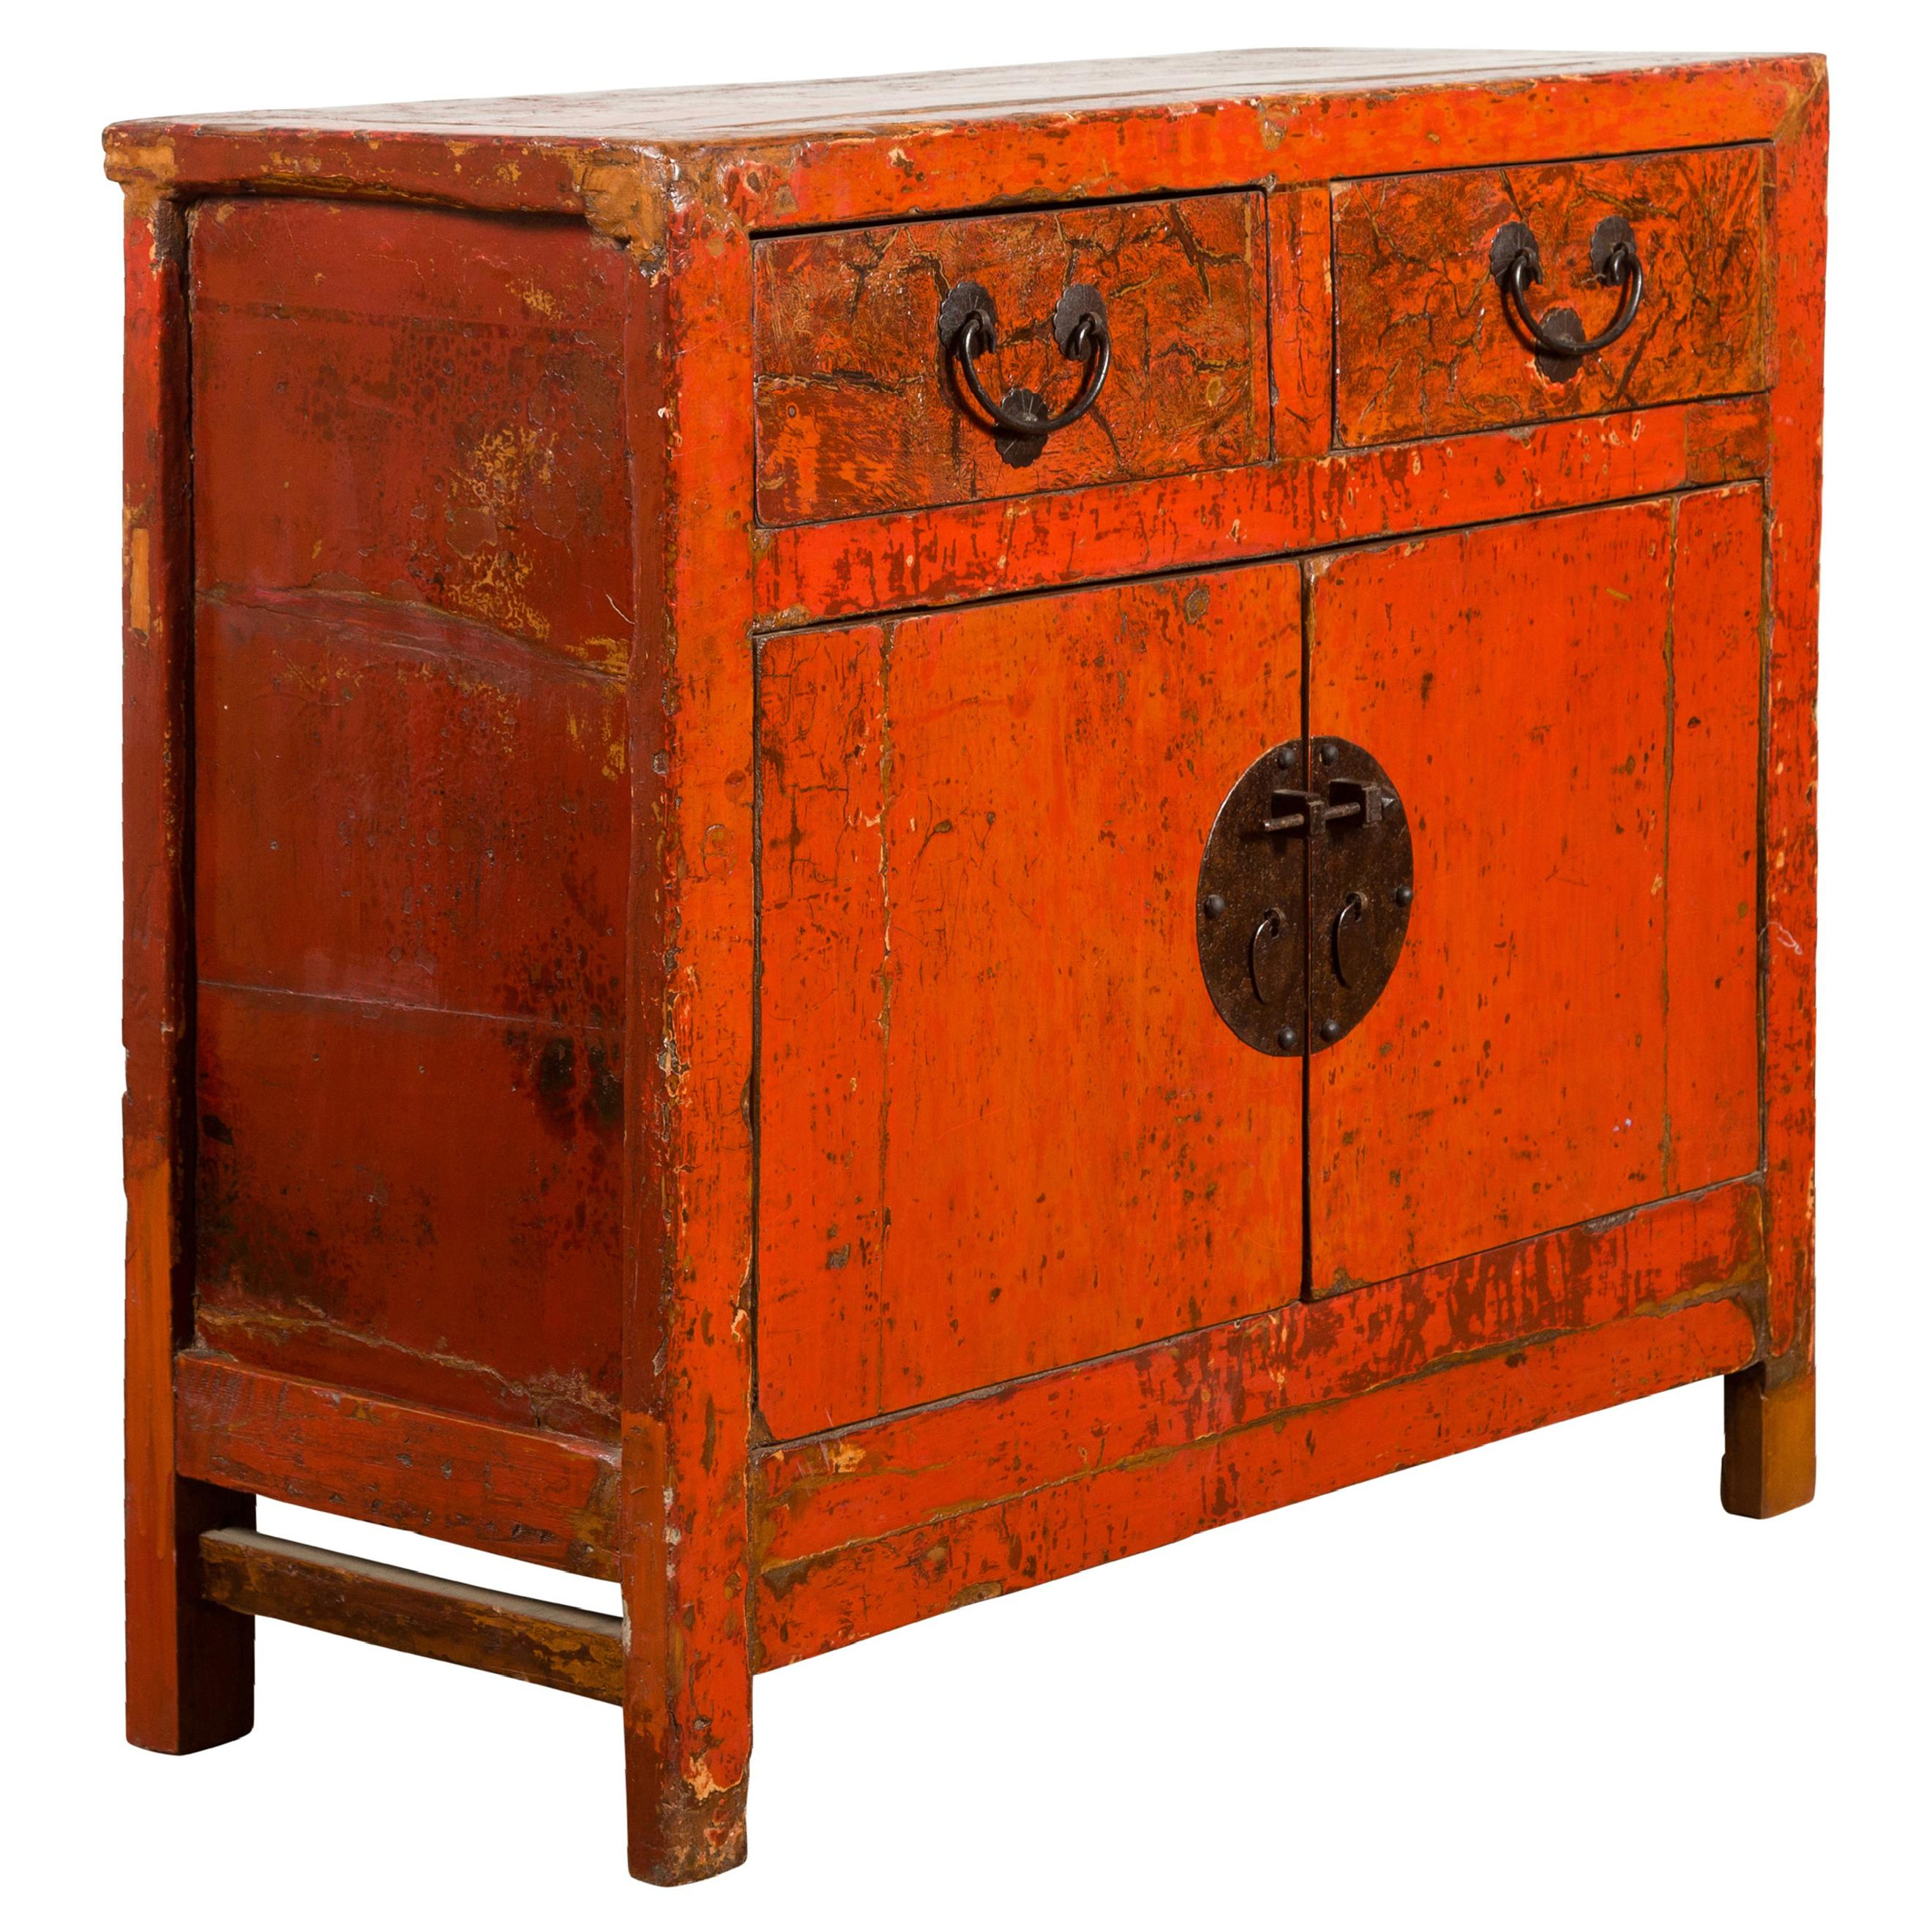 Chinese Qing Dynasty Period 19th Century Red Lacquered Small Cabinet